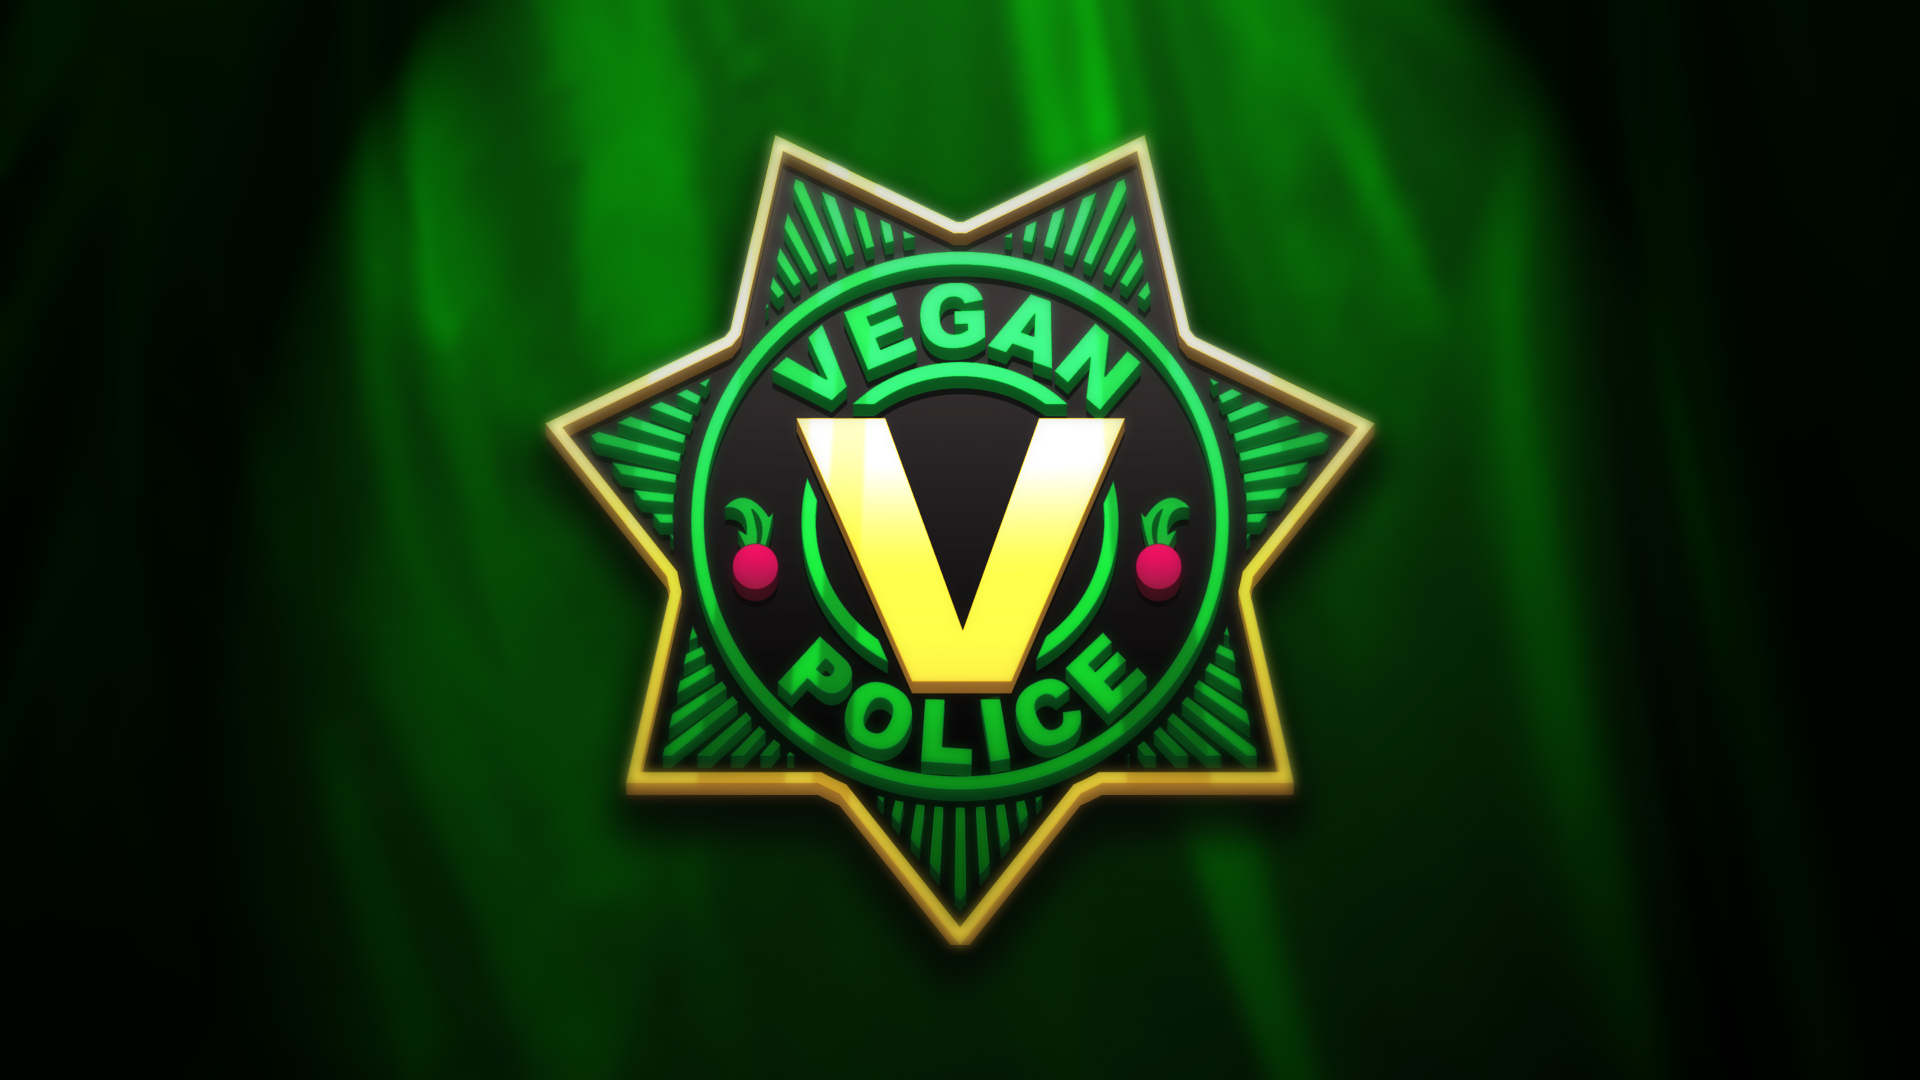 Discussion Forums Computers and Technology Vegan wallpapers 1920x1080